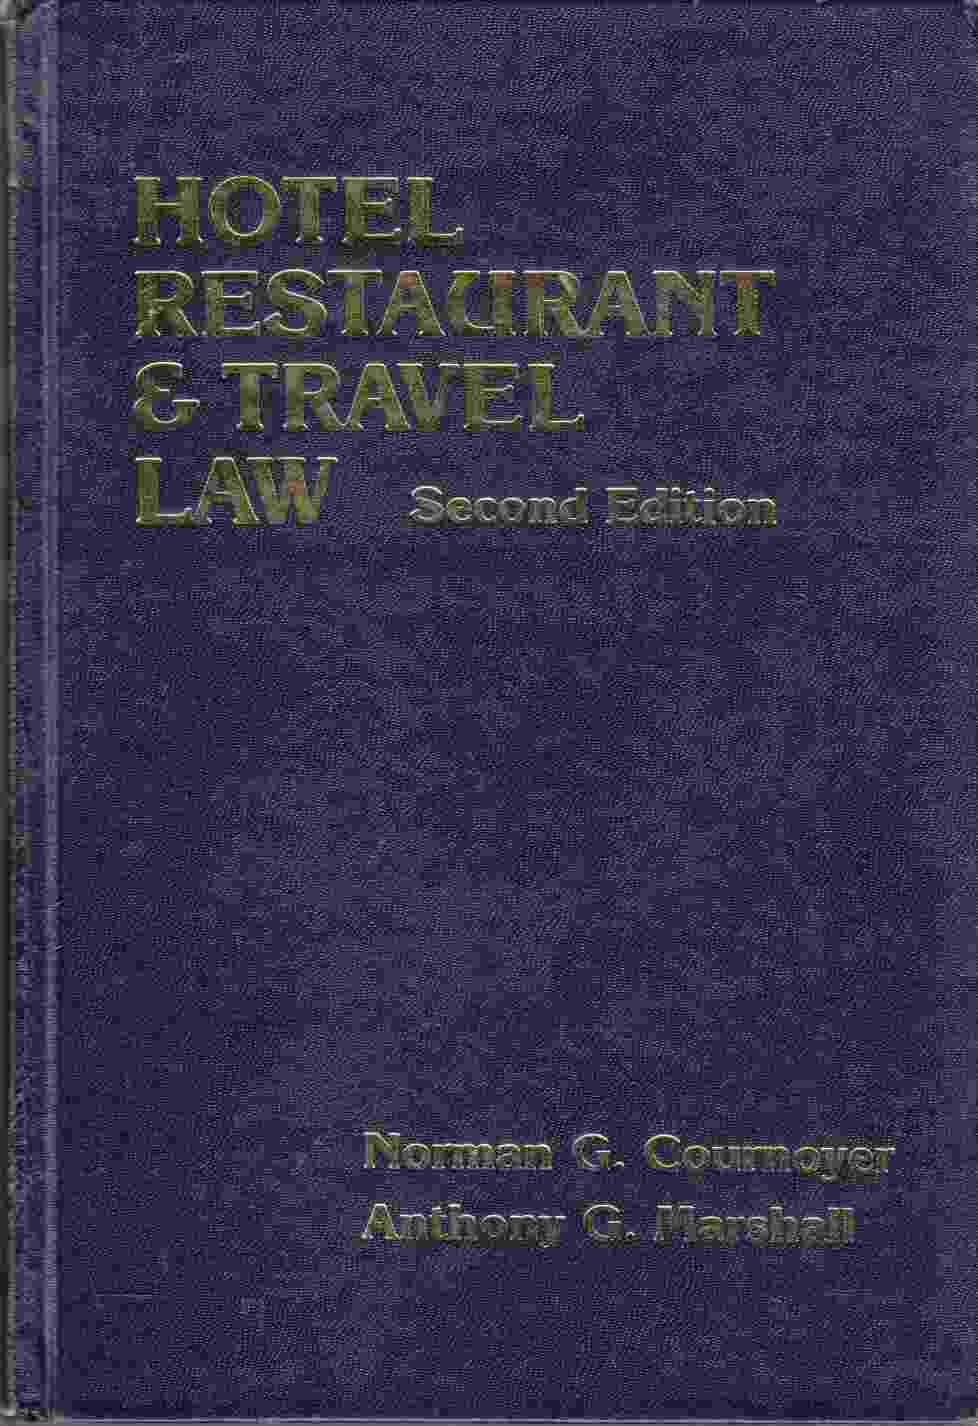 Image for Hotel Restaurant & Travel Law Second Edition